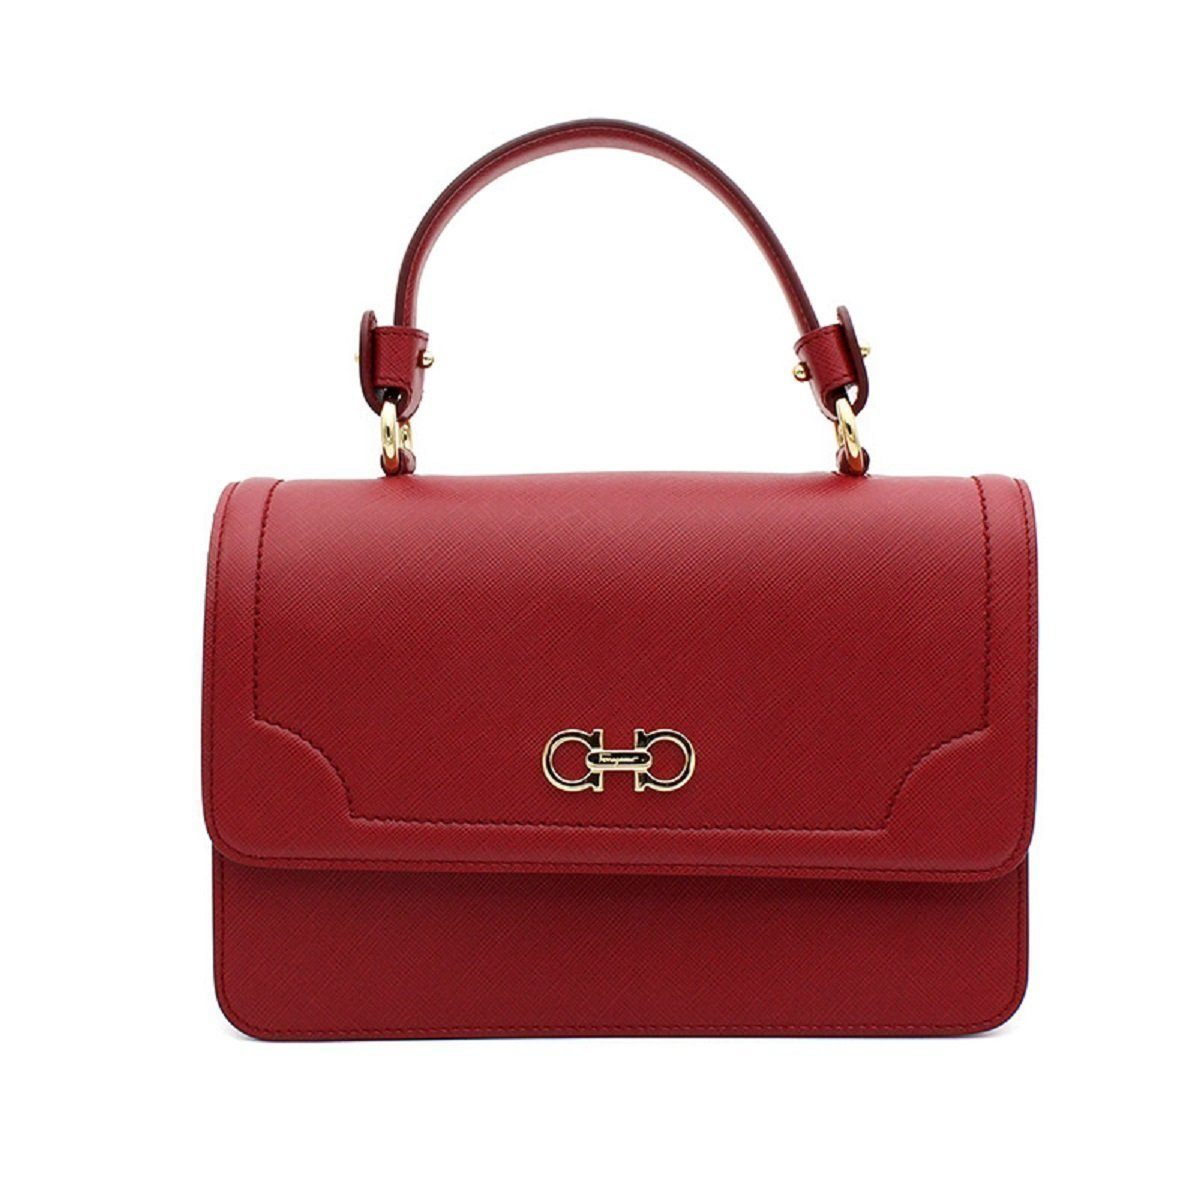 Ferragamo Women's Red Seila Pamplona Pebble Calf Handbag F966/3 Handbags Ferragamo